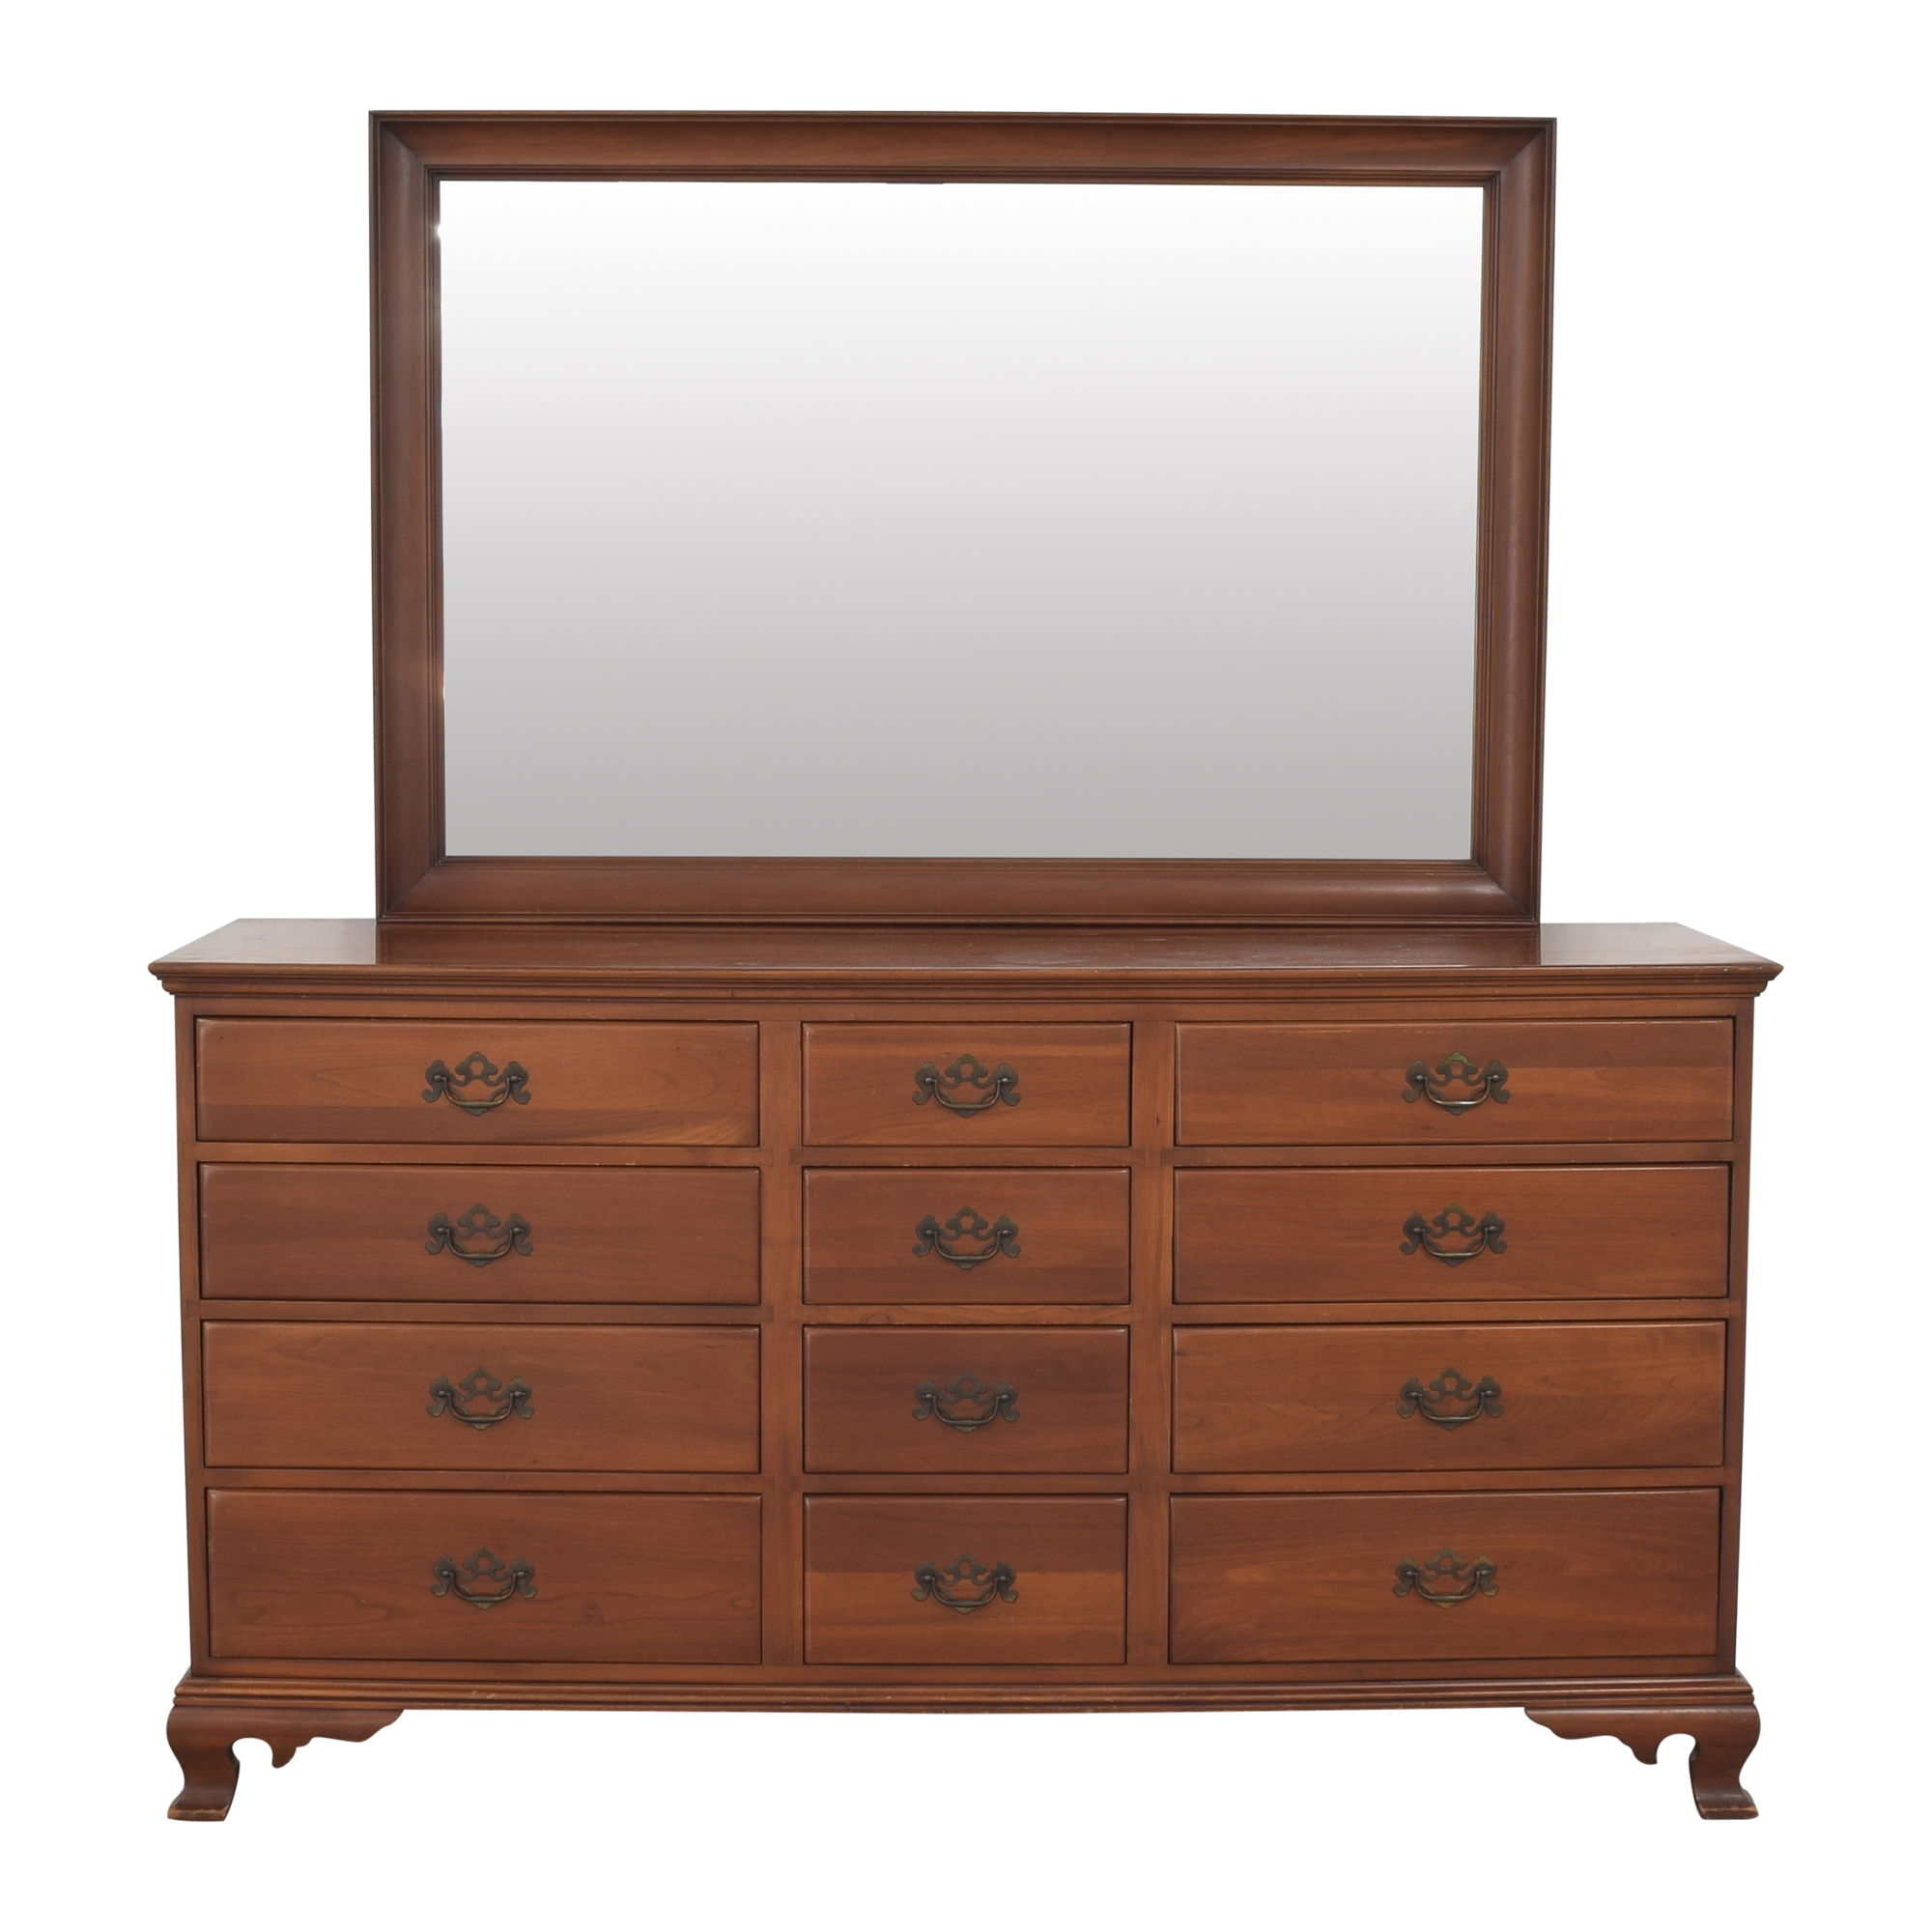 J.B. Van Sciver Furniture J.B. Van Sciver Furniture Twelve Drawer Dresser with Mirror Dressers